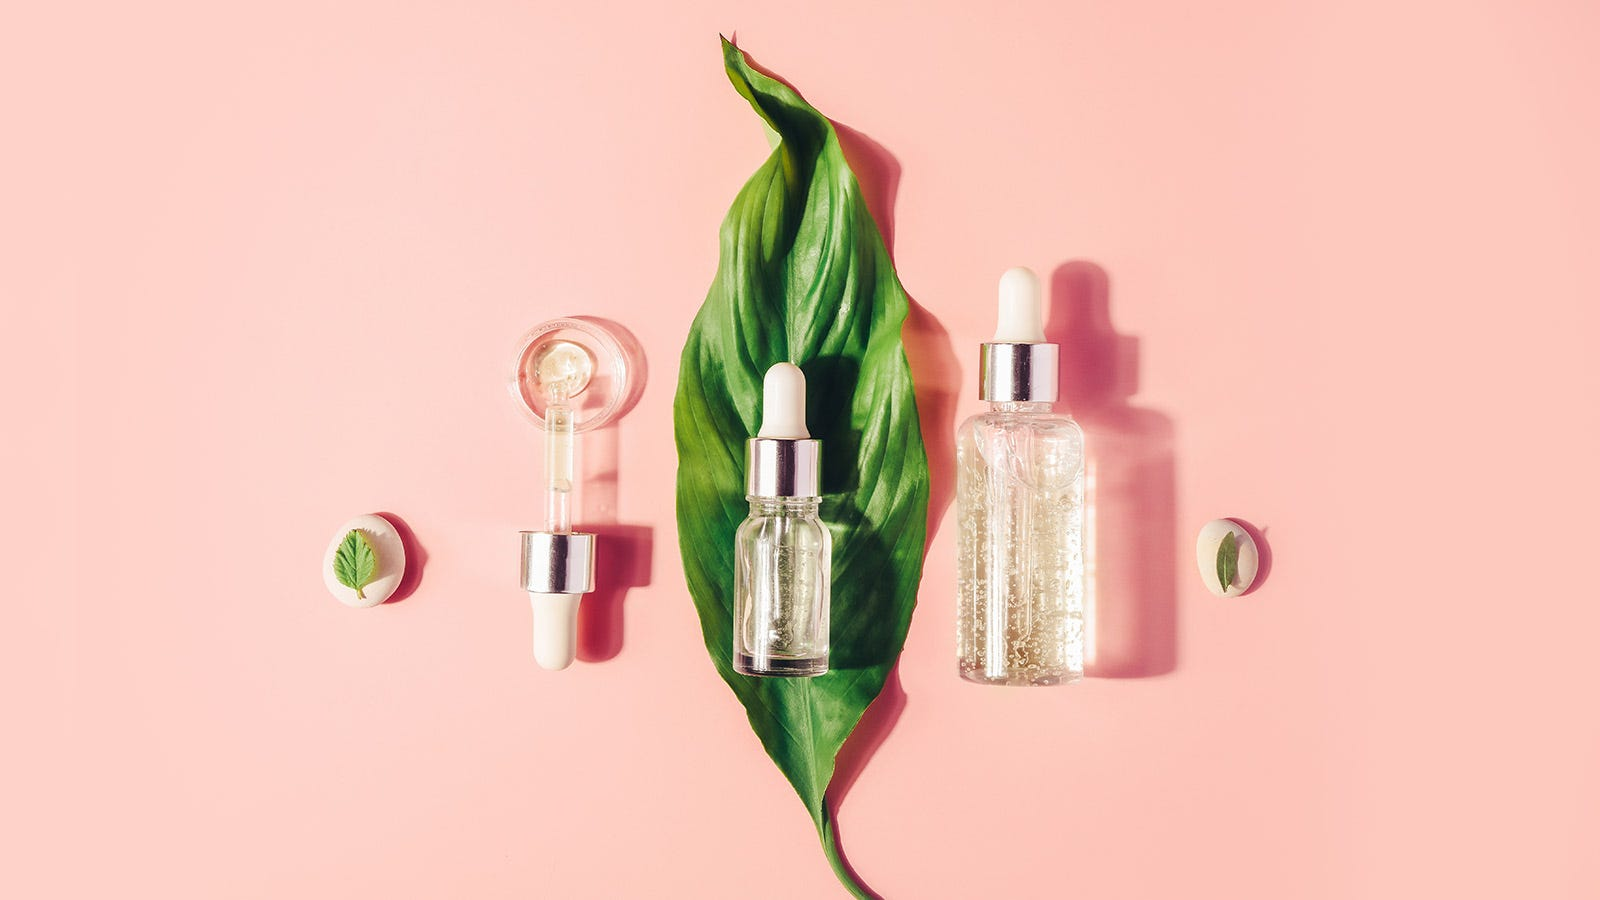 Various face serums laid out on a pink background with plant leaves.